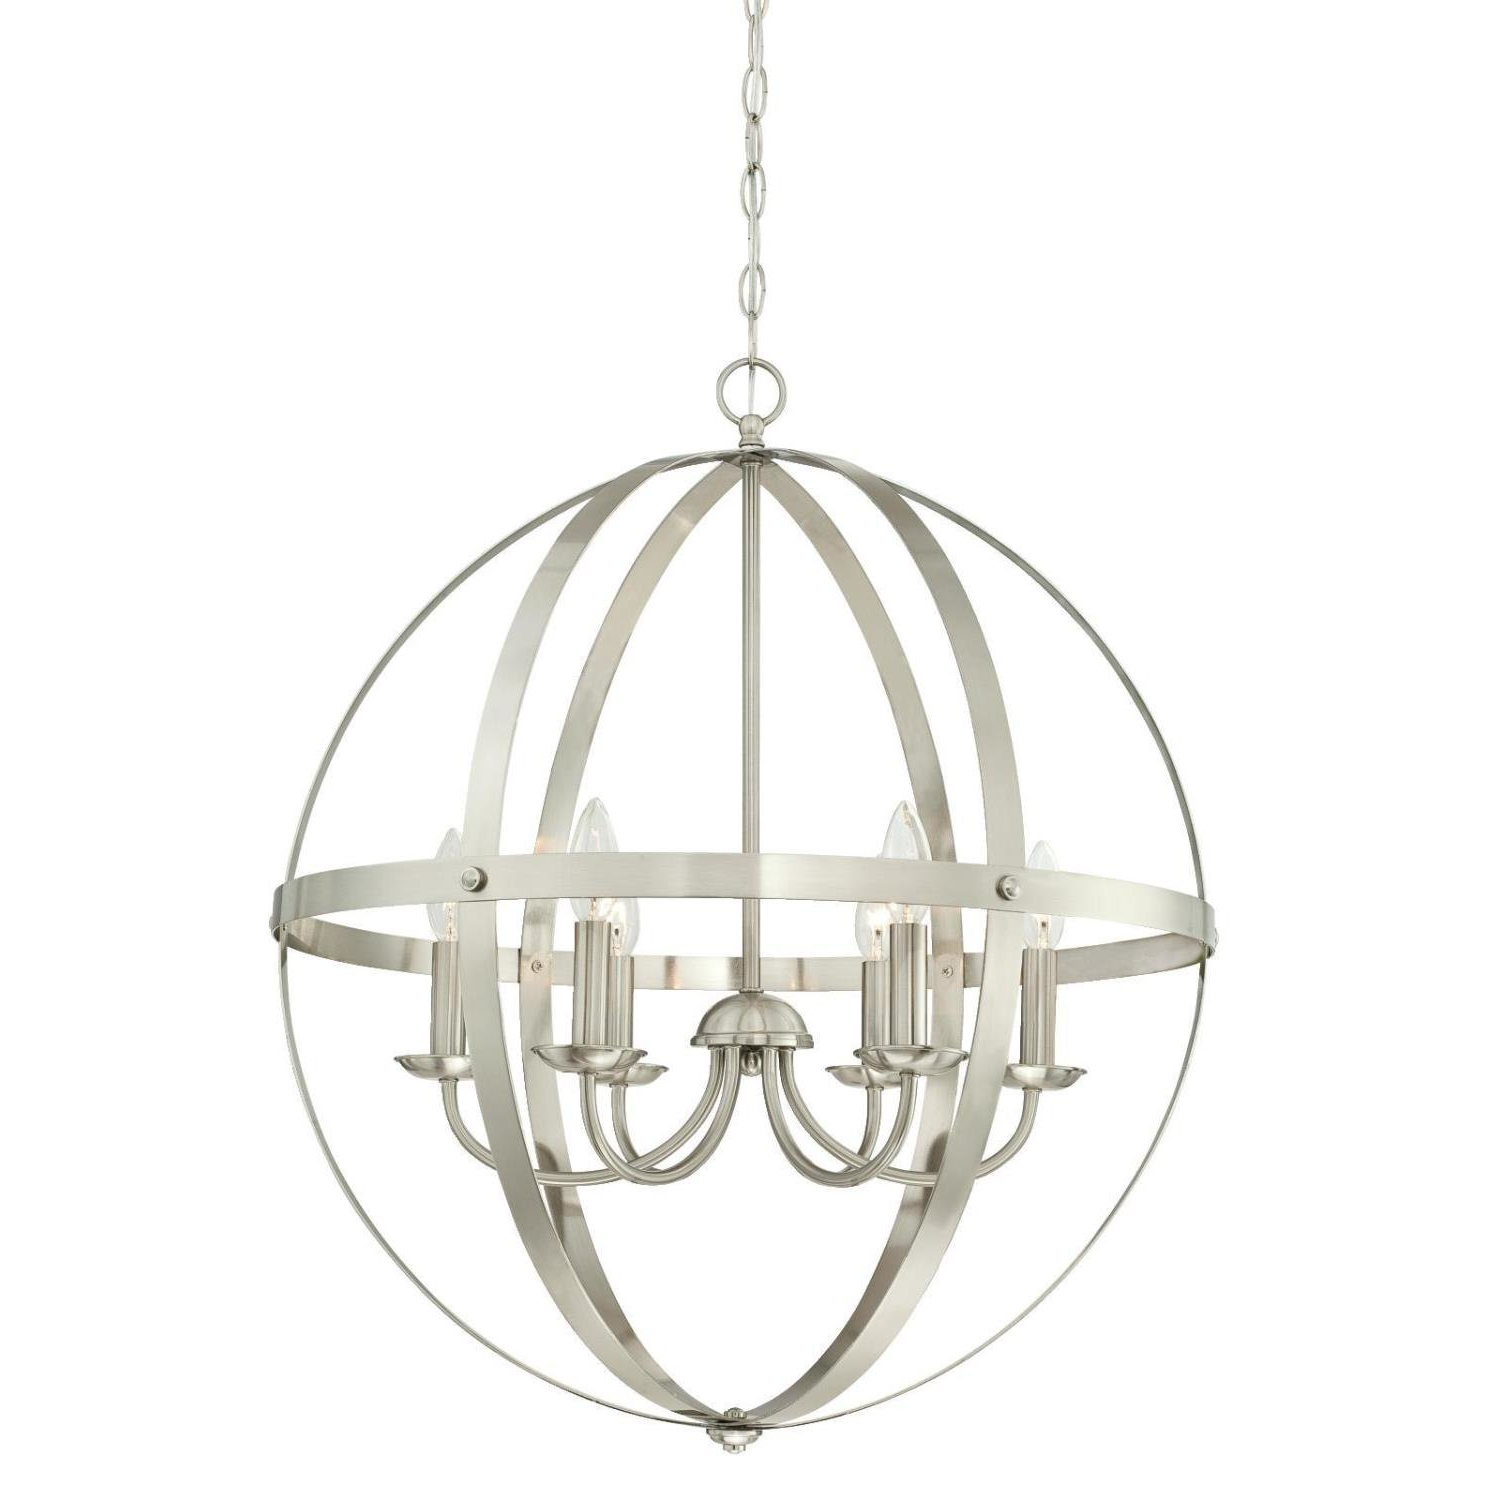 Joon 6 Light Globe Chandelier With Regard To Preferred Joon 6 Light Globe Chandeliers (View 10 of 20)